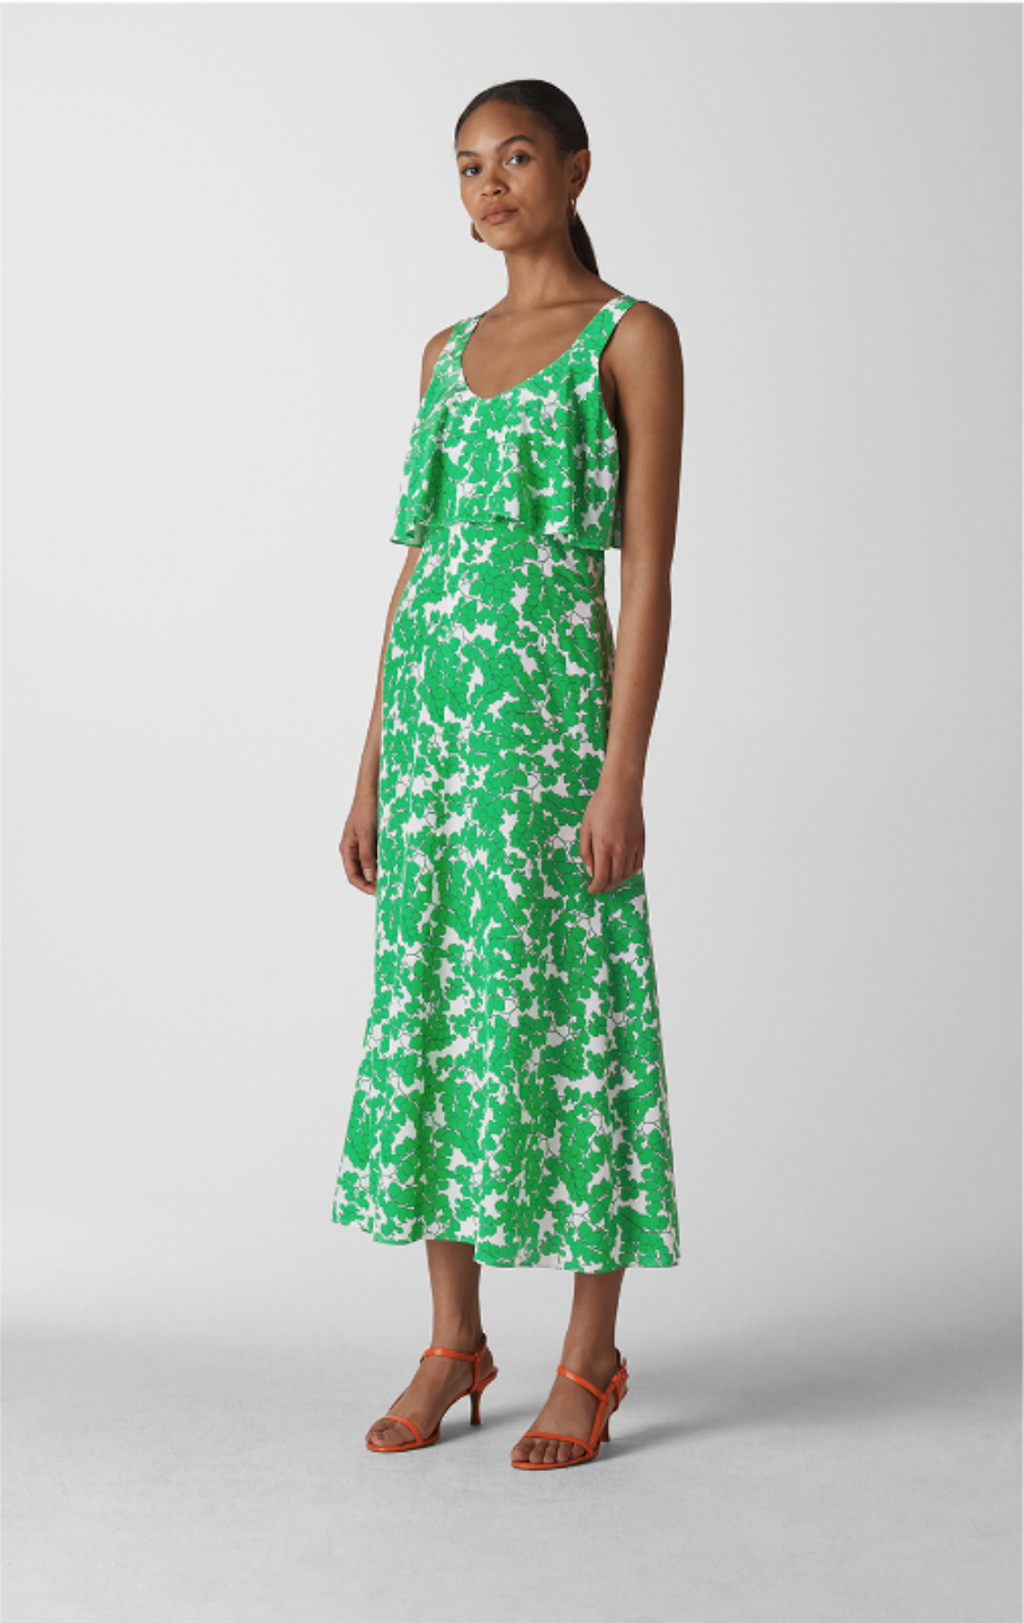 Whistles, Omana Silk Blossom Dress, £229.00